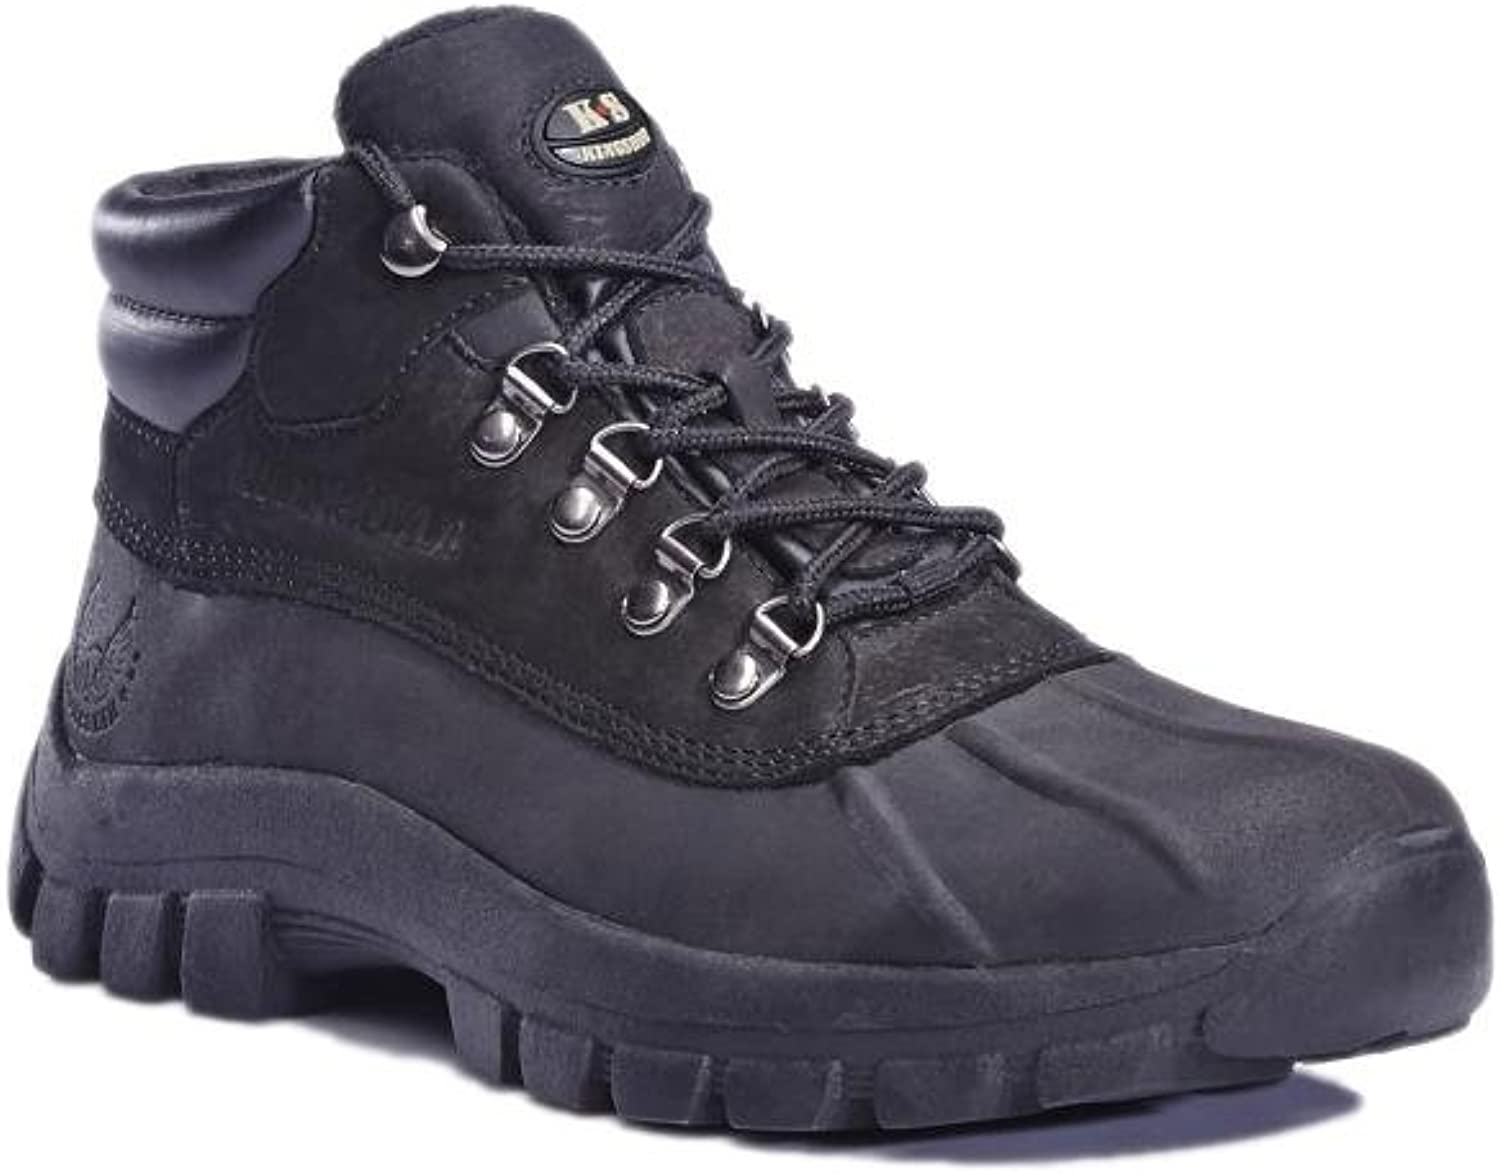 KINGSHOW 1428 Water Proof Men Rubber Sole Winter Snow Boots Black size 11